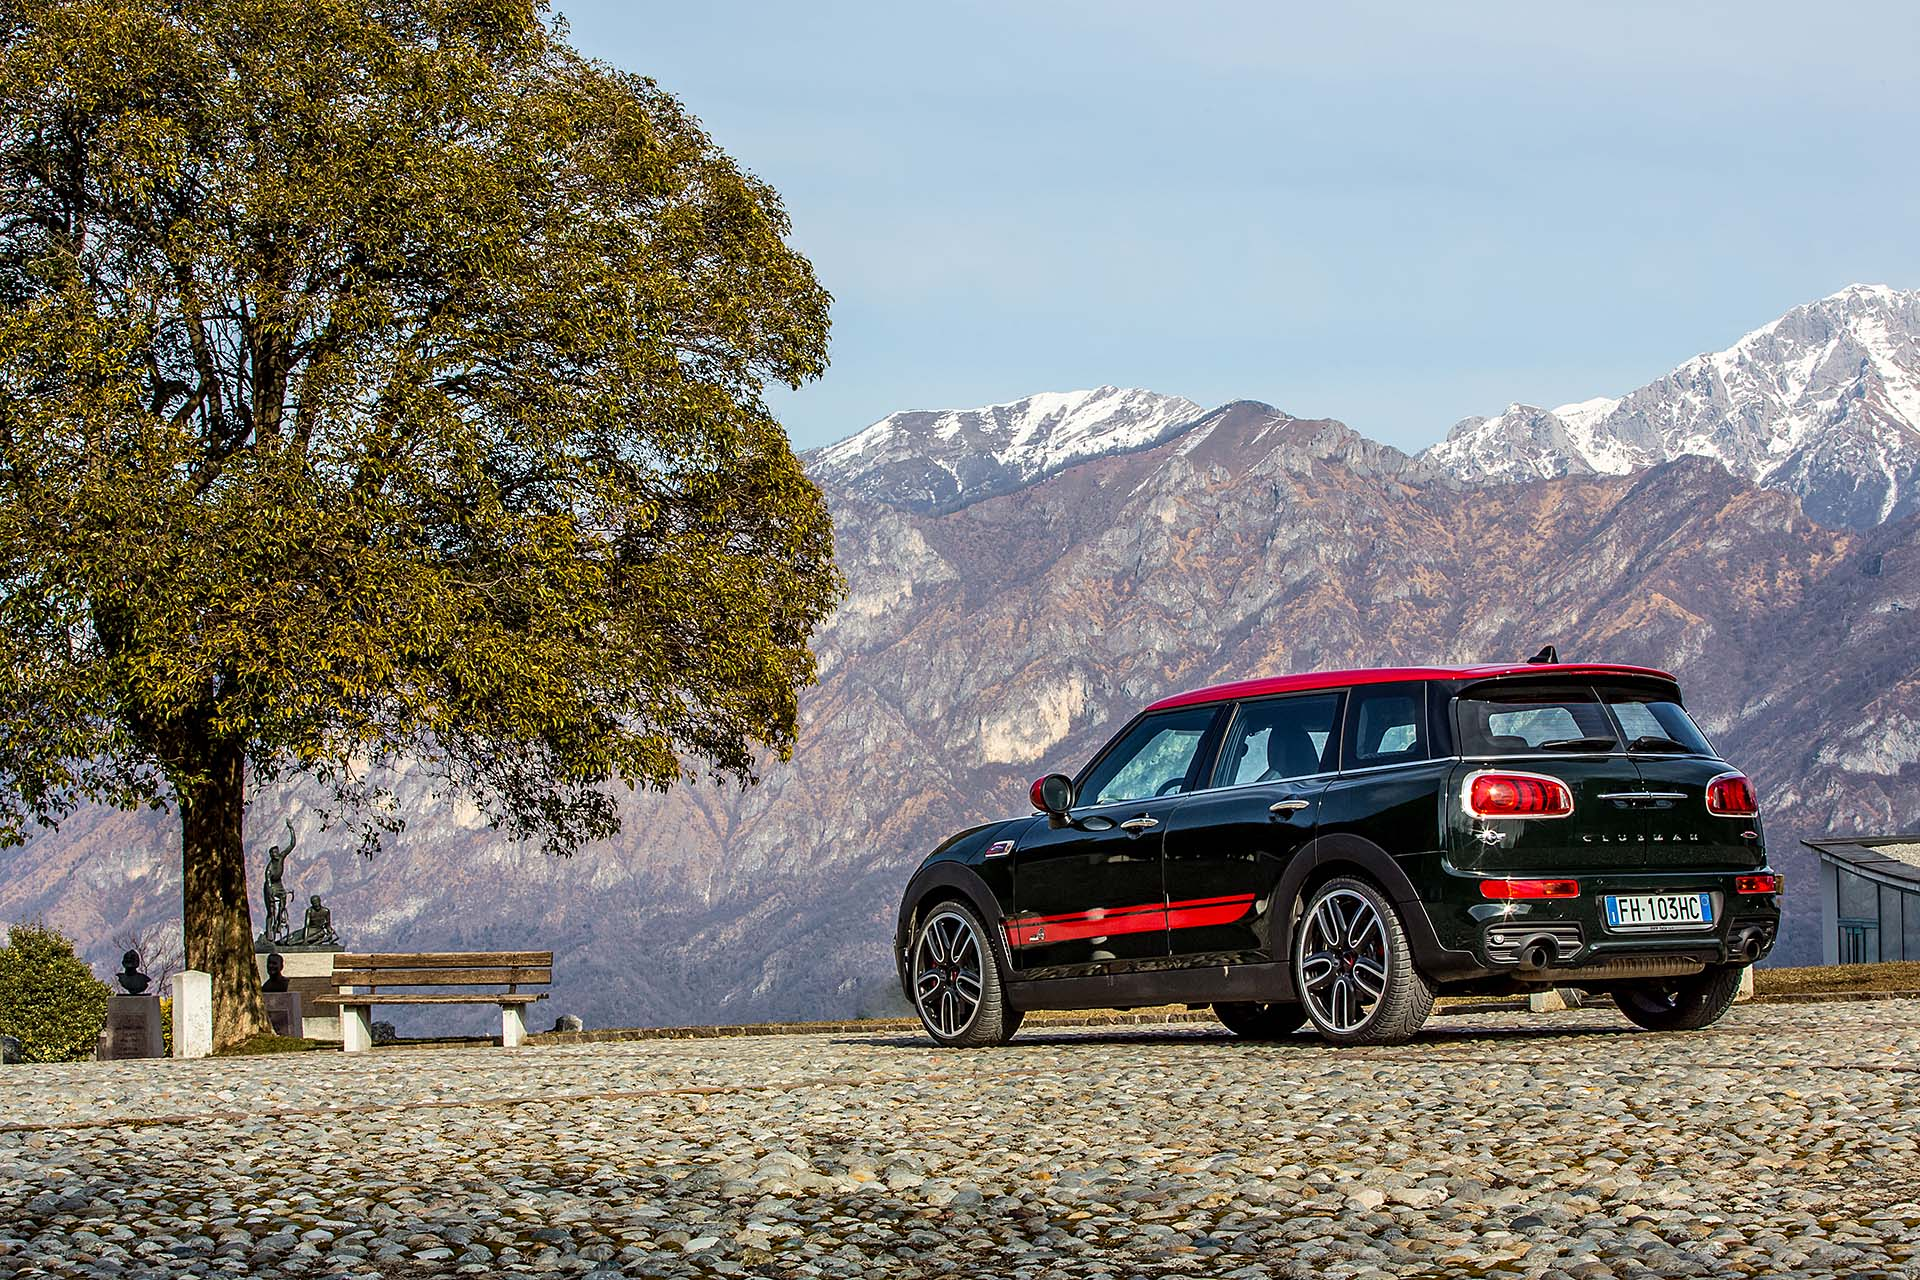 Prova mini clubman jcw all4 per famiglie da corsa red live for Quanto costa un tram in collina